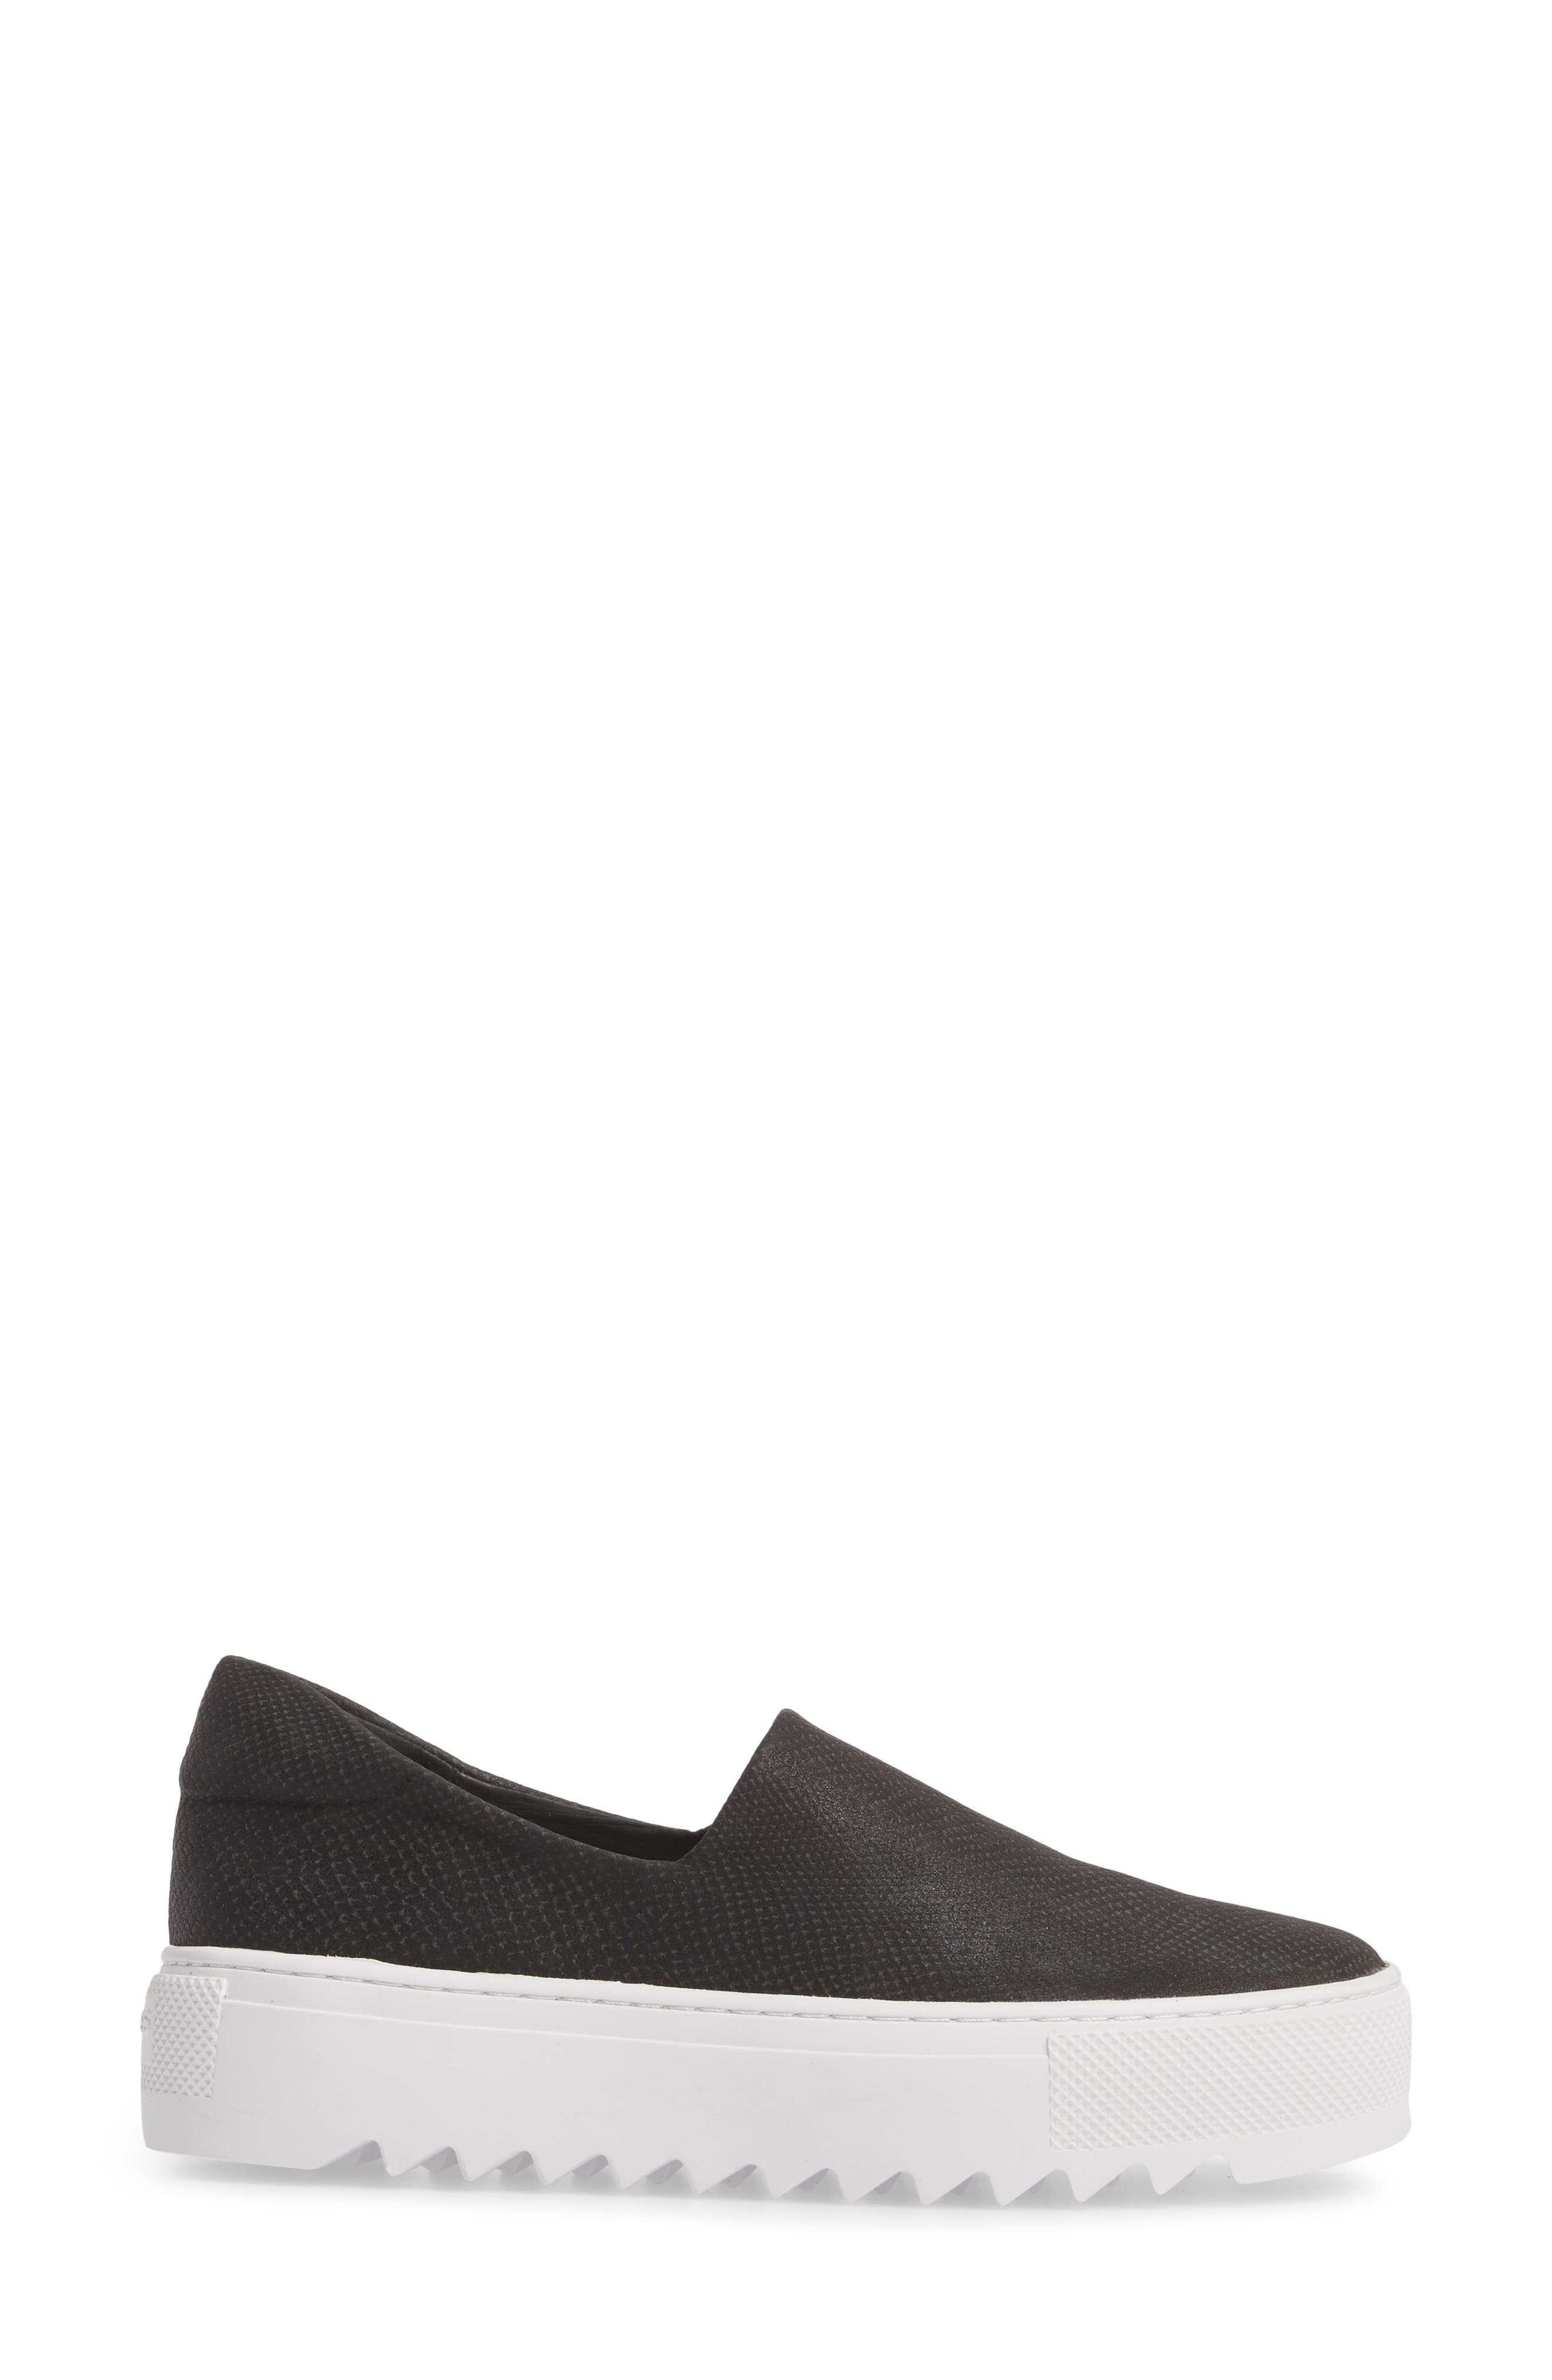 Sage Platform Slip-On Sneaker,                             Alternate thumbnail 3, color,                             BLACK MIX FABRIC